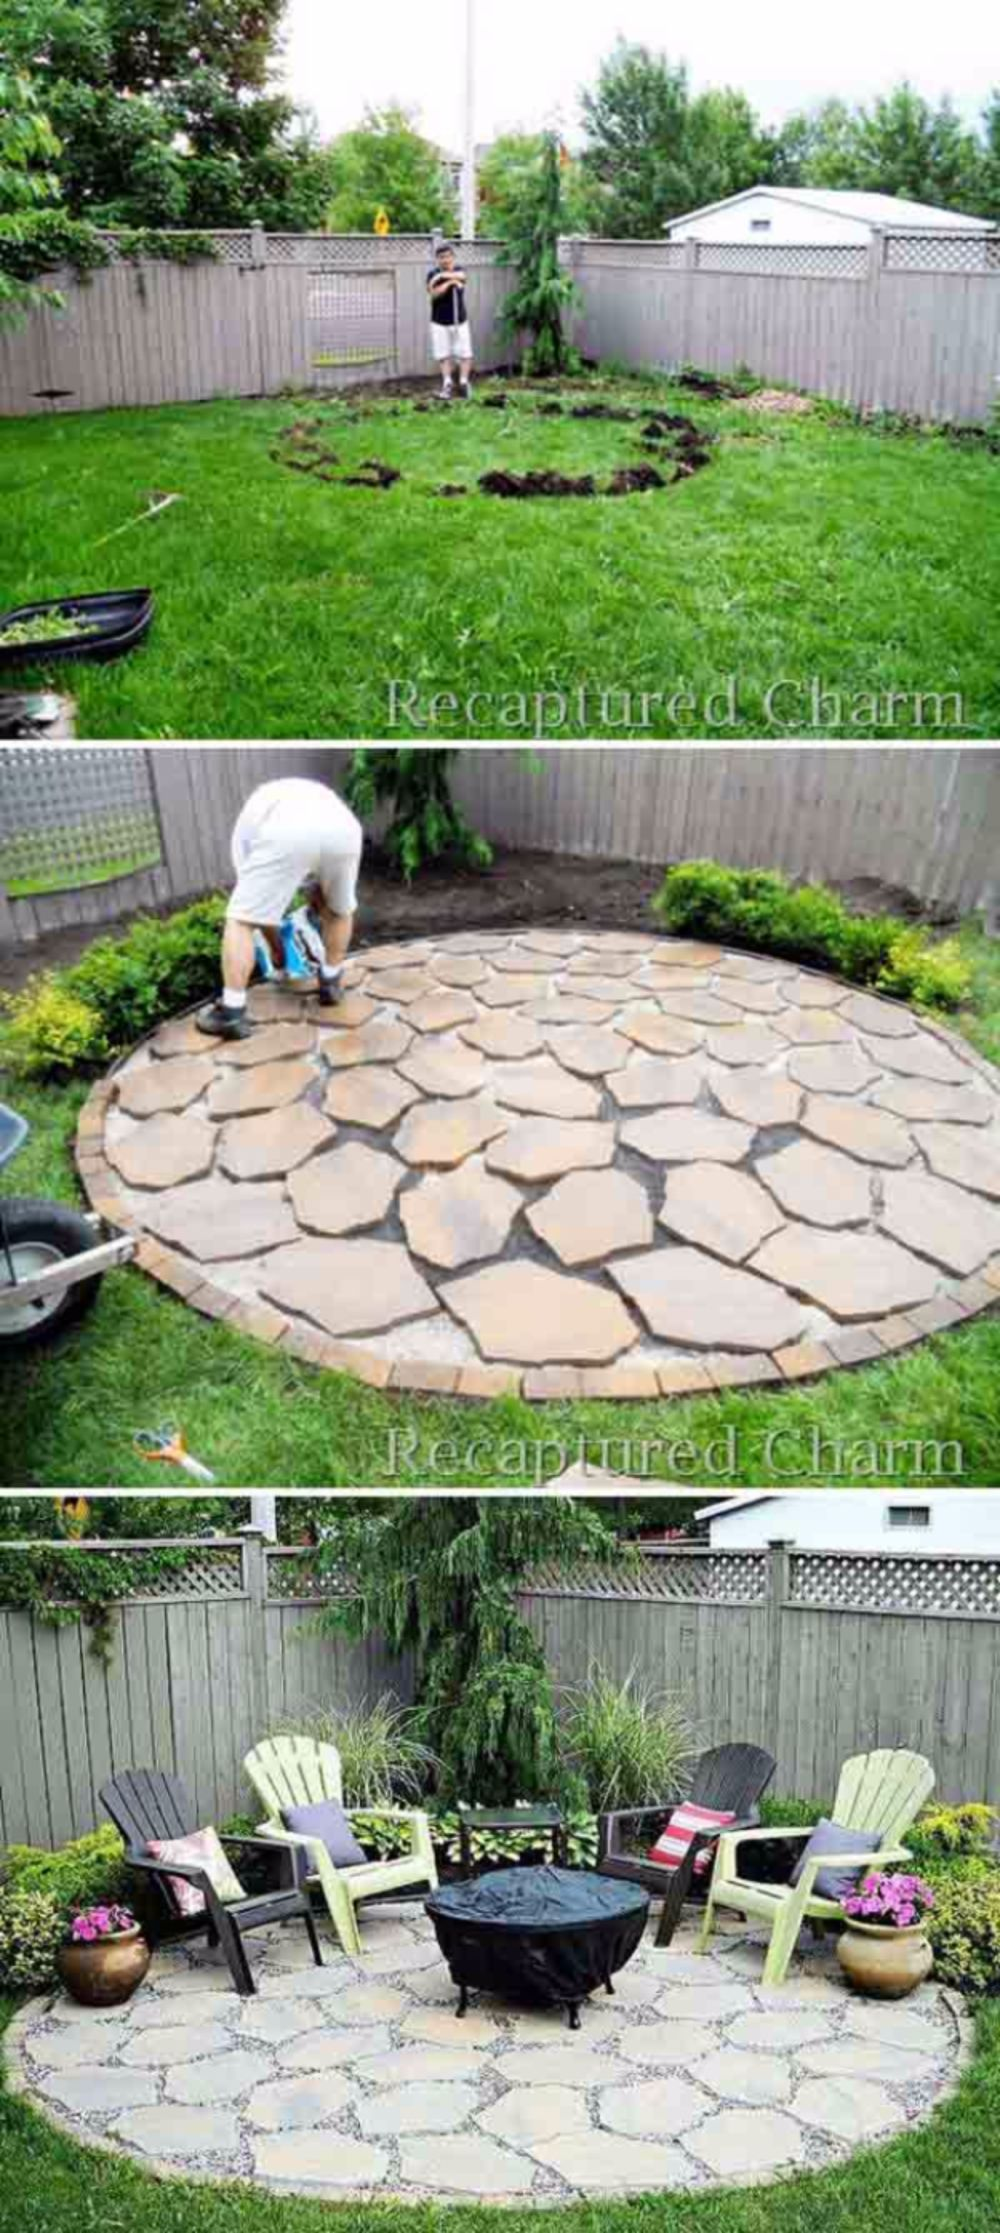 awesome 30 DIY Patio Ideas on A Budget  https://wartaku.net/2017/05/27/30-diy-patio-ideas-budget/ - 30 DIY Patio Ideas On A Budget Pinterest Diy Patio, Patios And